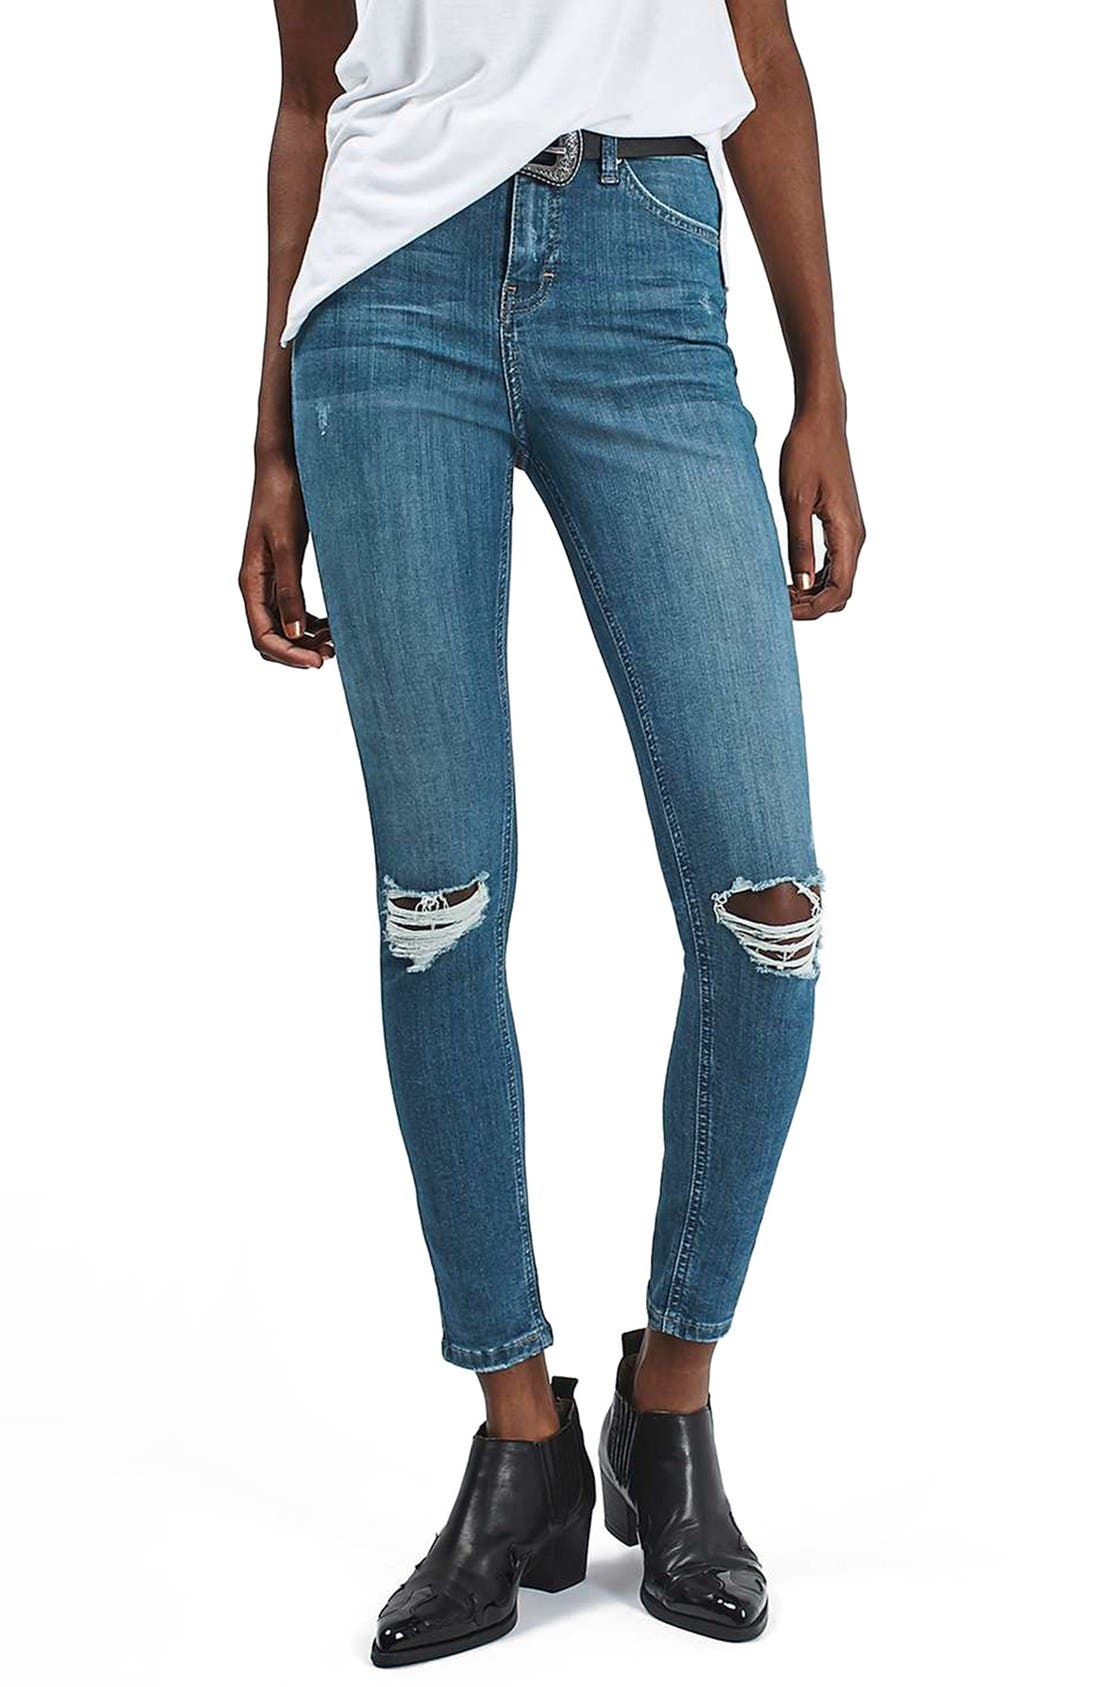 Alternate Image 1 Selected - Topshop 'Jamie' Ripped Ankle Skinny Jeans